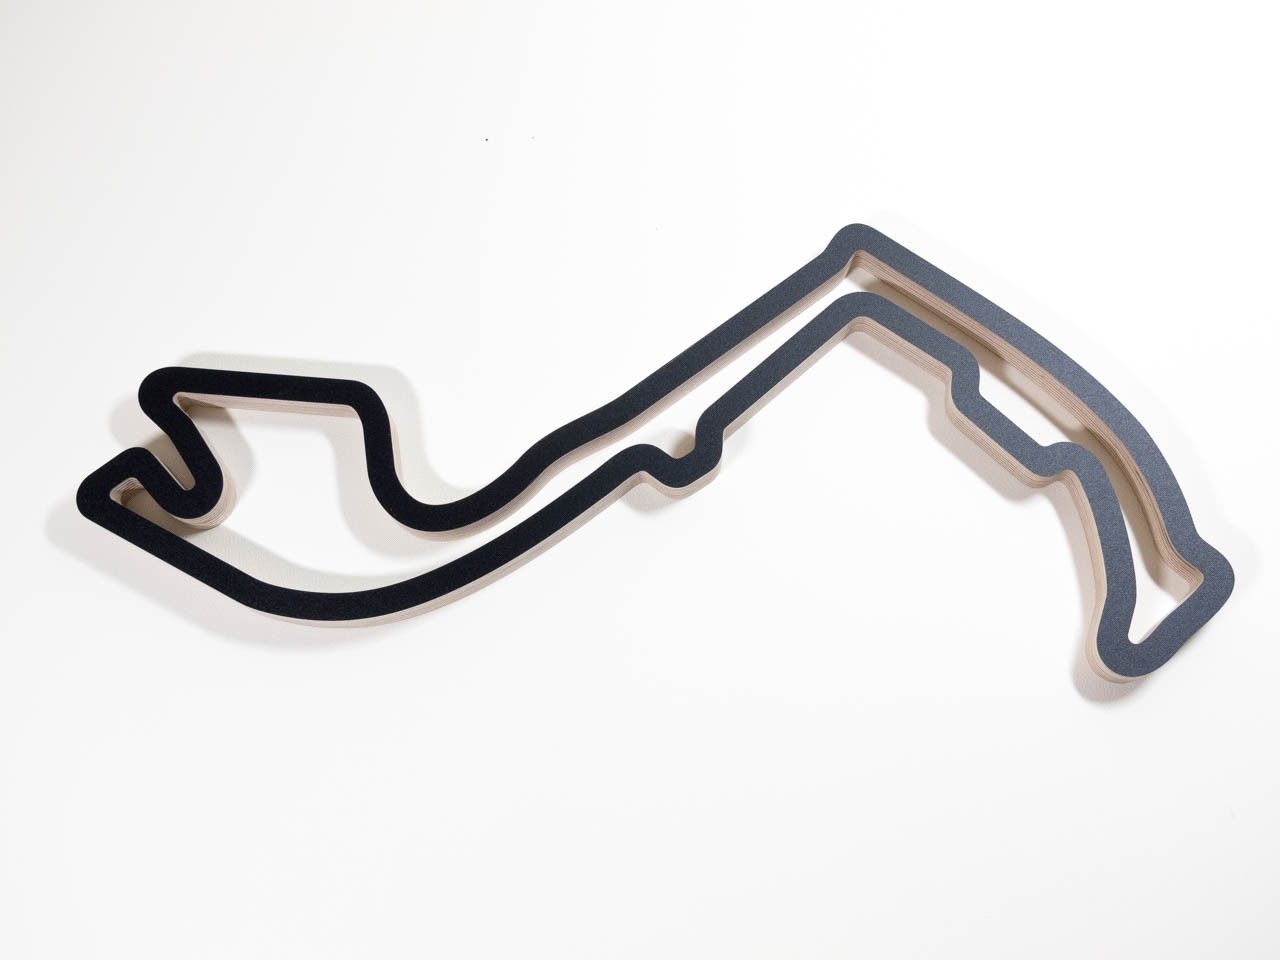 Monaco F1 Grand Prix Motorsport Racing Track Wall Art Wooden Throughout Preferred Race Track Wall Art (View 4 of 15)